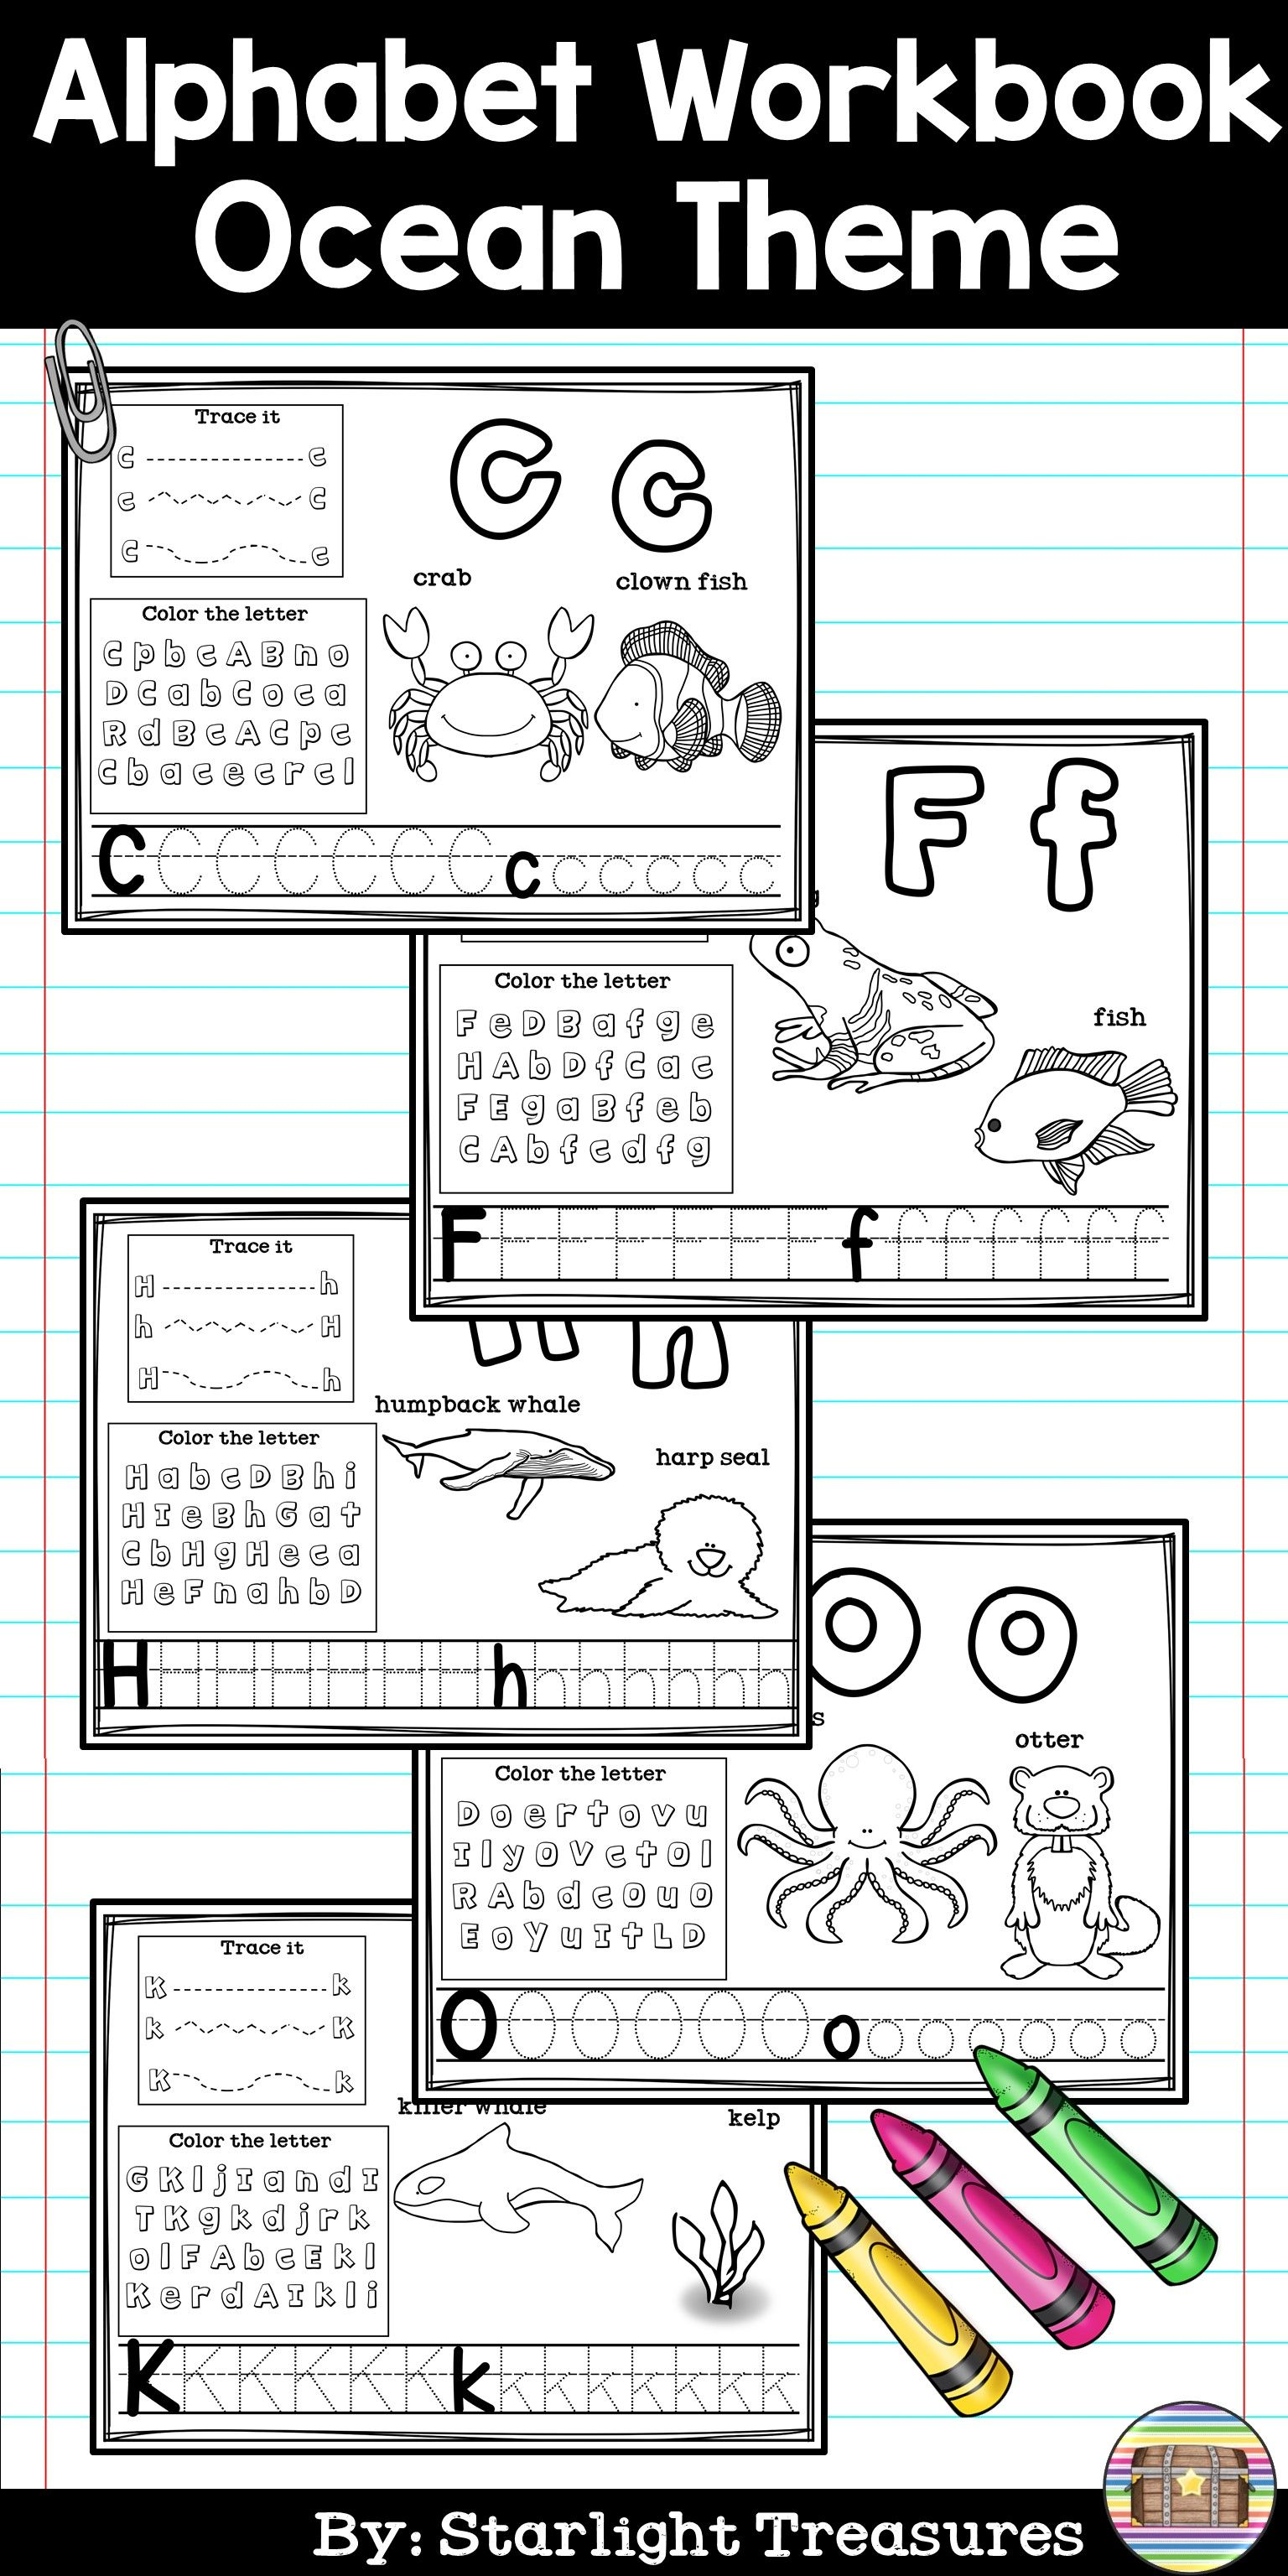 Alphabet Workbook Worksheets A Z The Ocean Theme With